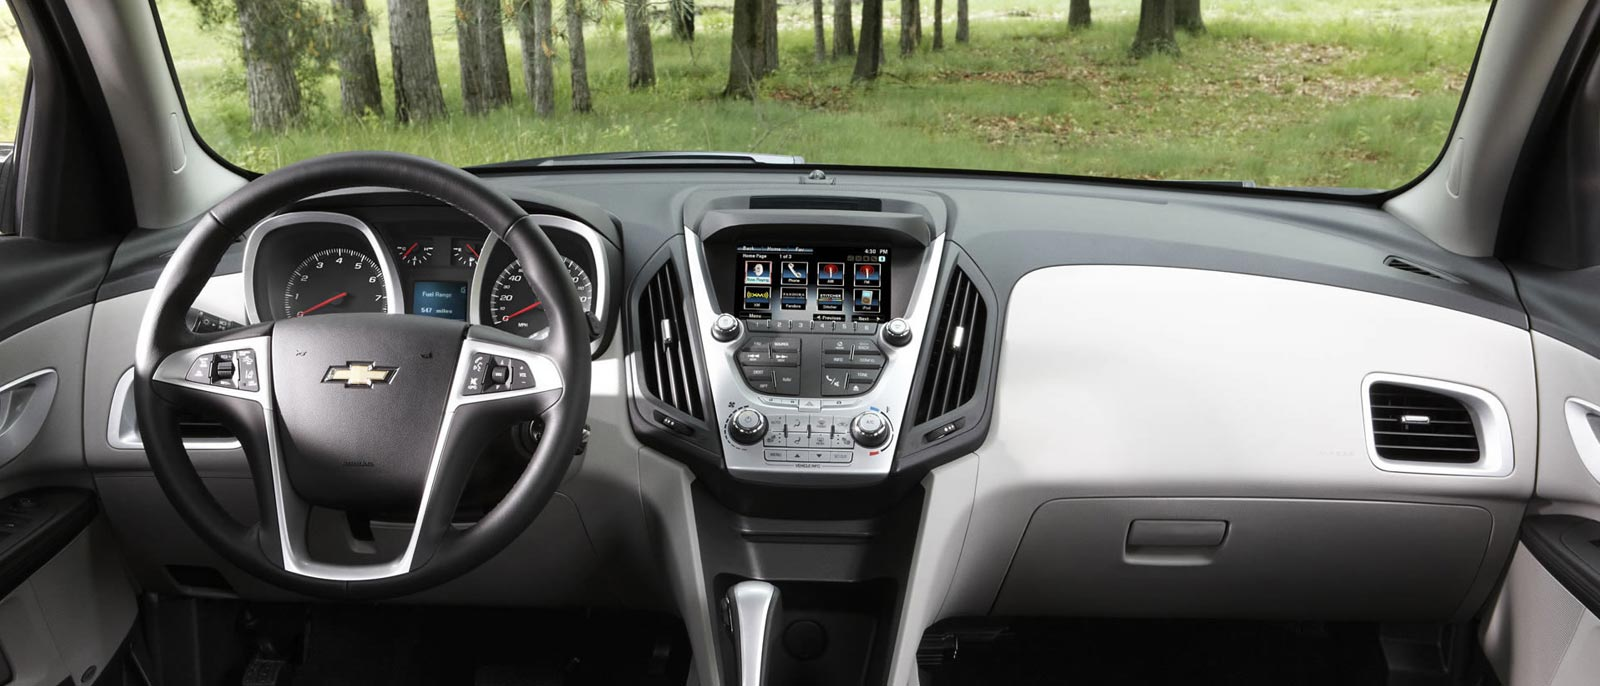 2015 Chevy Equinox Interior >> 2015 Chevrolet Equinox Chicago Park Ridge Mike Anderson Chevy